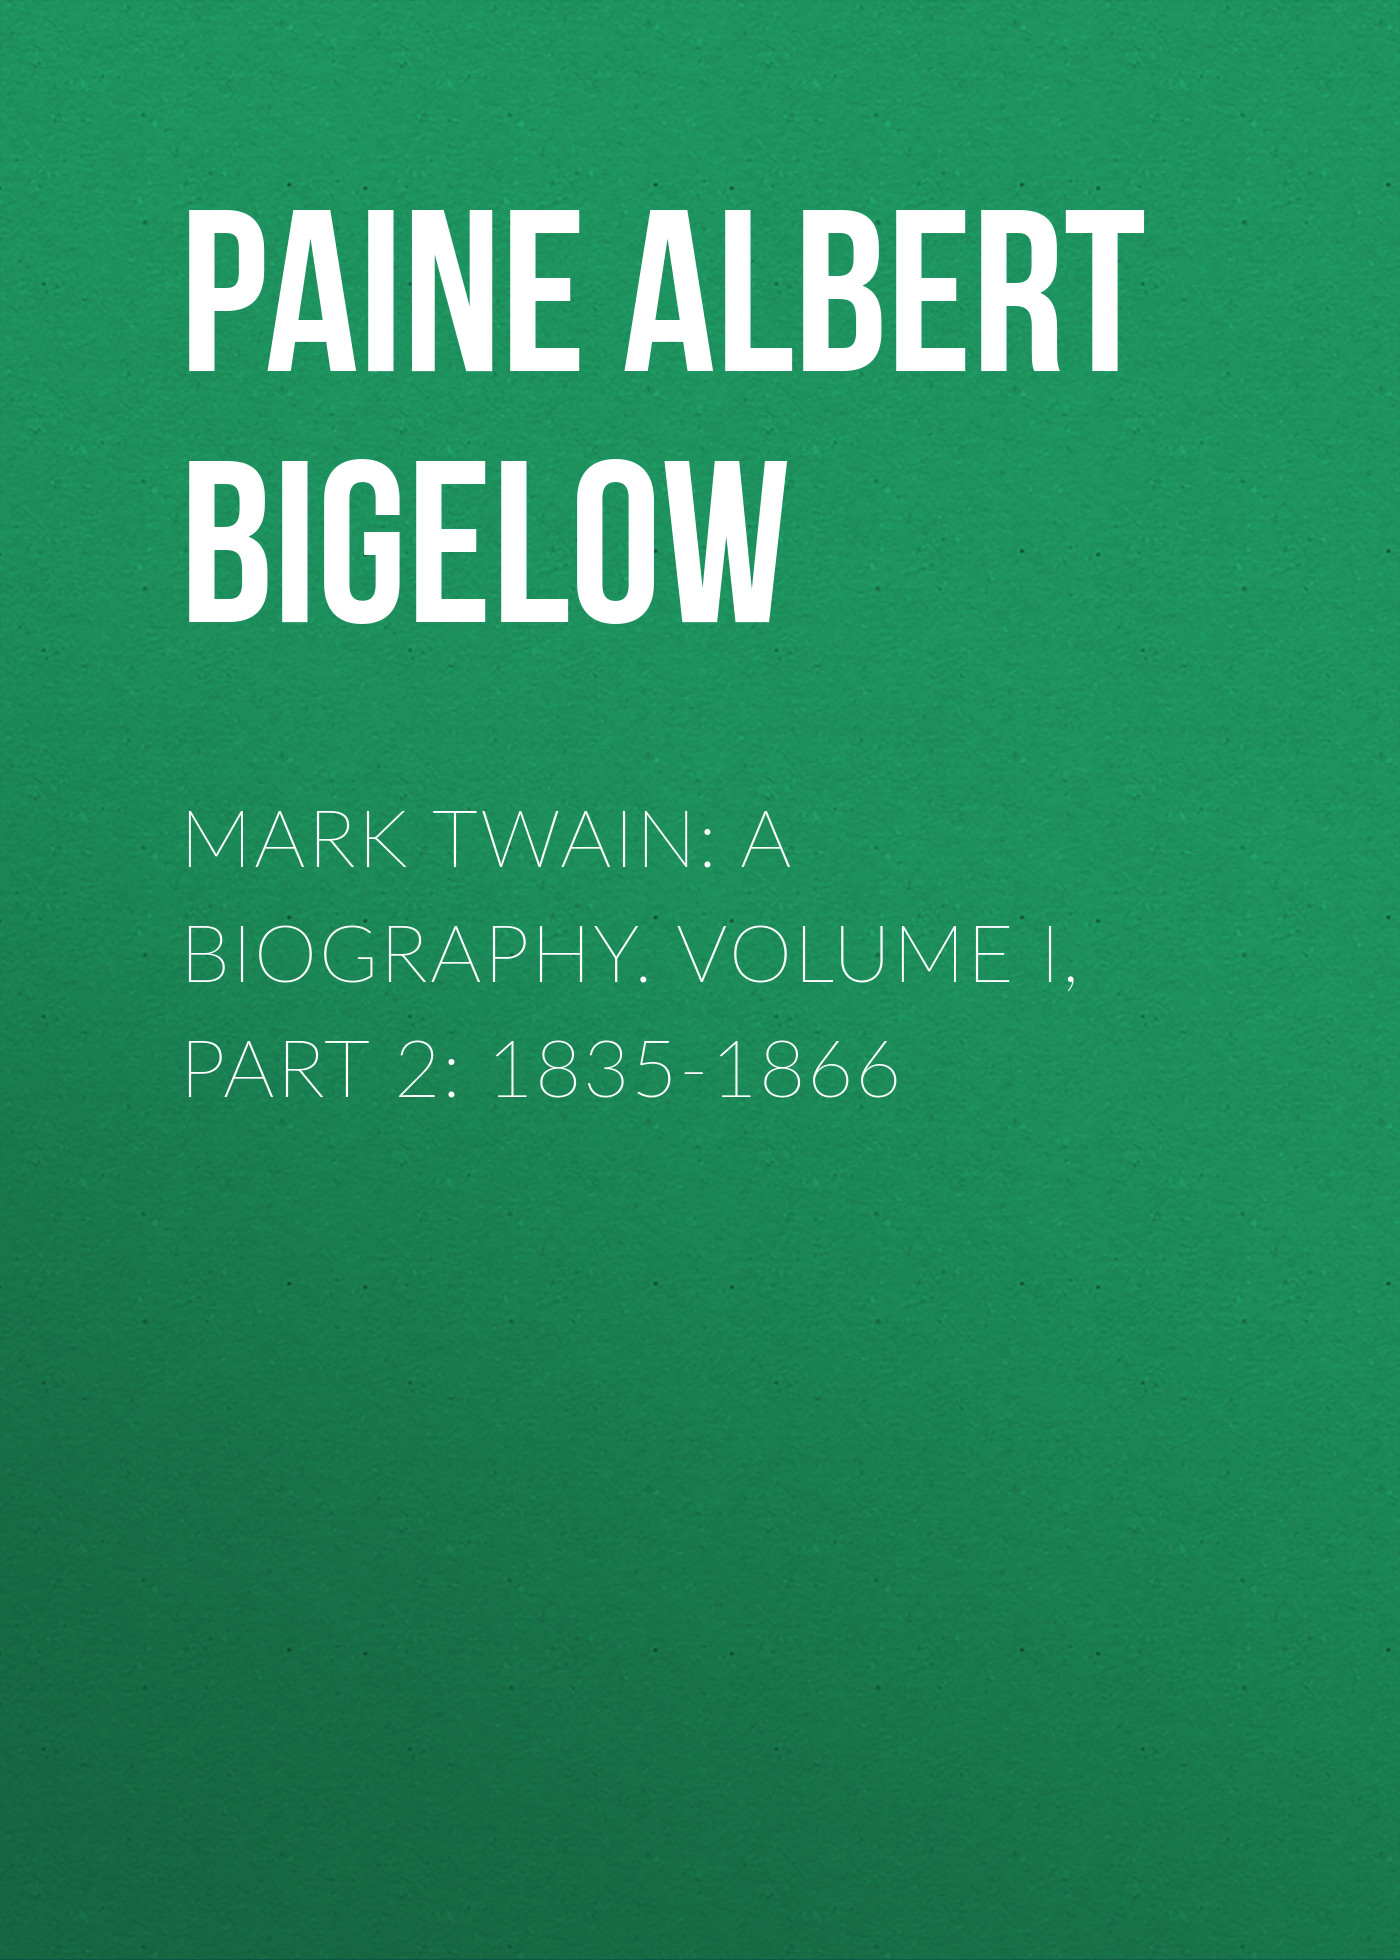 Paine Albert Bigelow Mark Twain: A Biography. Volume I, Part 2: 1835-1866 shania twain shania twain now 2 lp